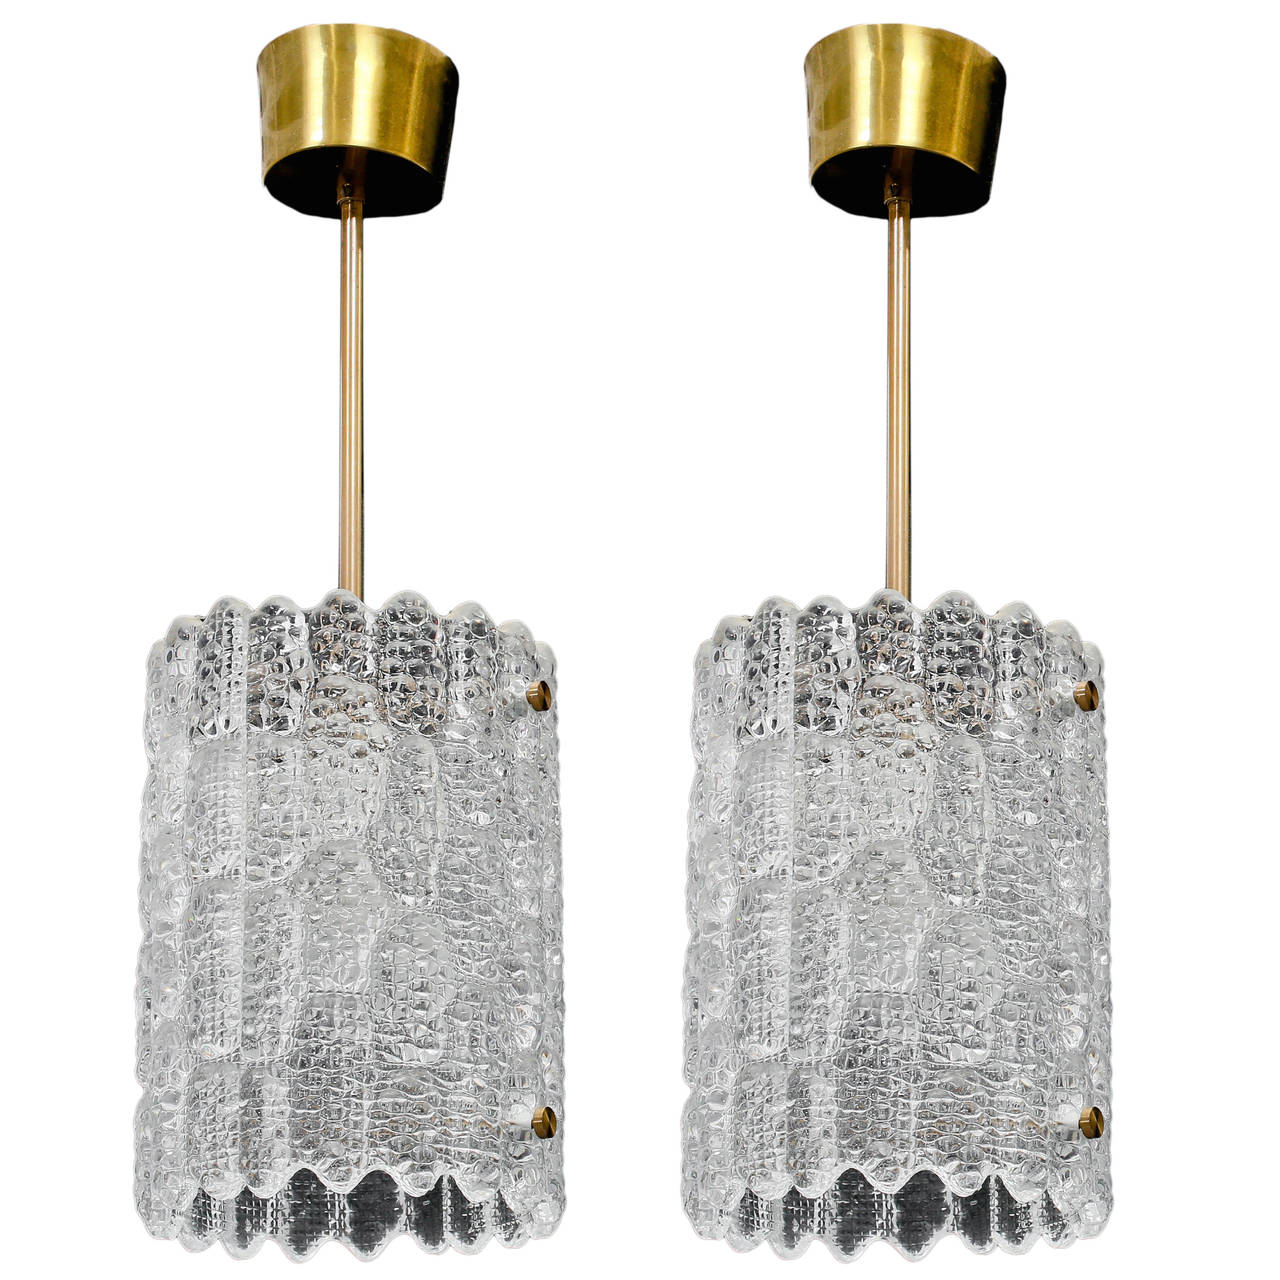 Pair of Crystal Pendant Lights by Carl Fagerlund for Orrefors For Sale